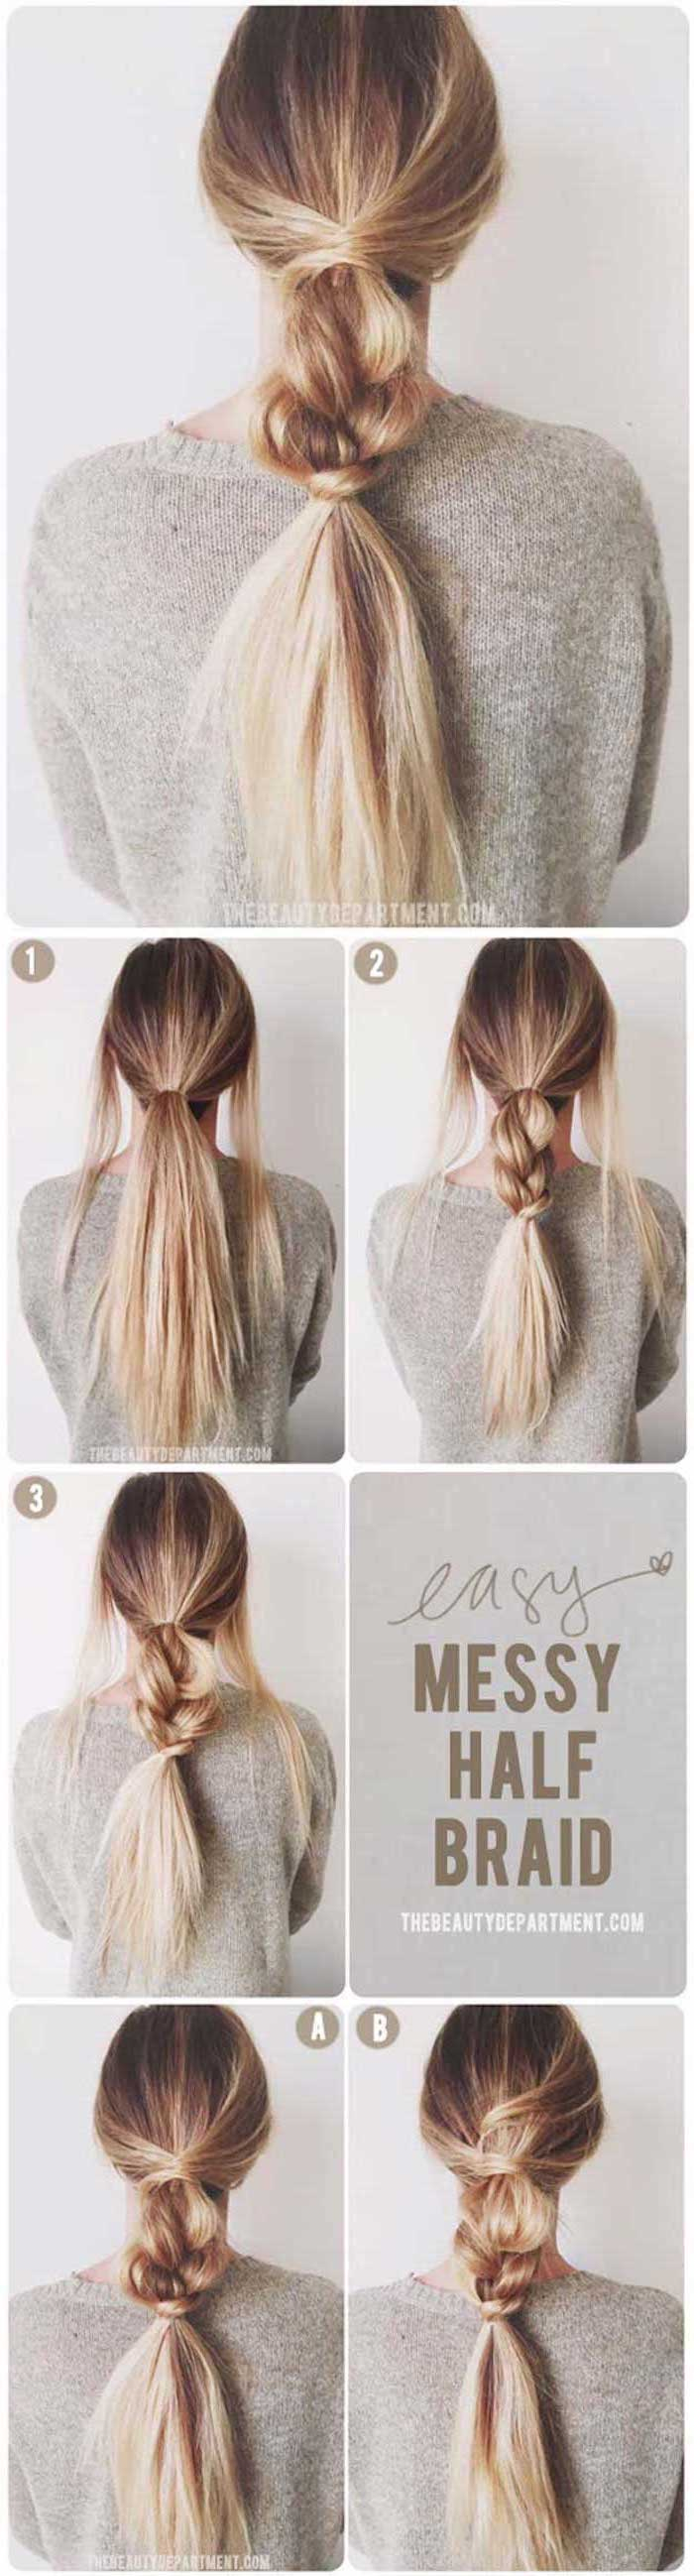 messy half braid photo collage of step by step diy tutorial cool hairstyles for girls done on brunette woman with blonde balayage